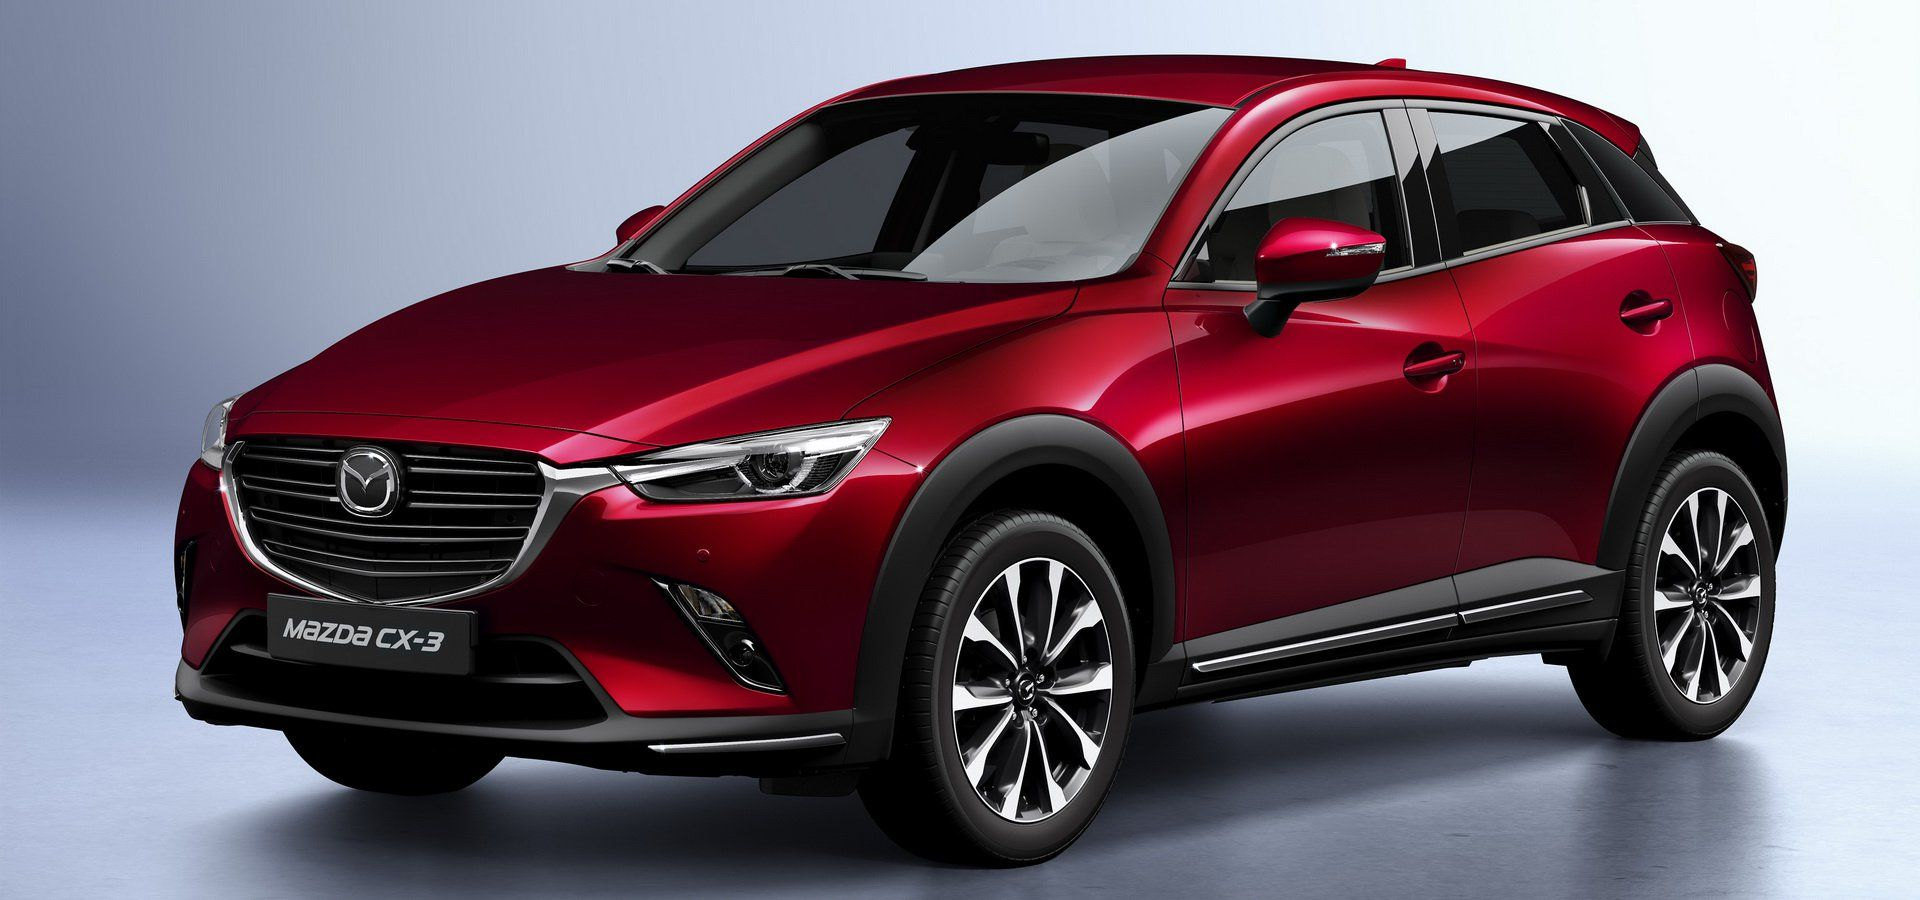 Mazda Cx 30 Vs Cx 3 Vs Cx 5 Which One Is Your Favorite Carscoops Mazda Cx3 Mazda Suv Mazda